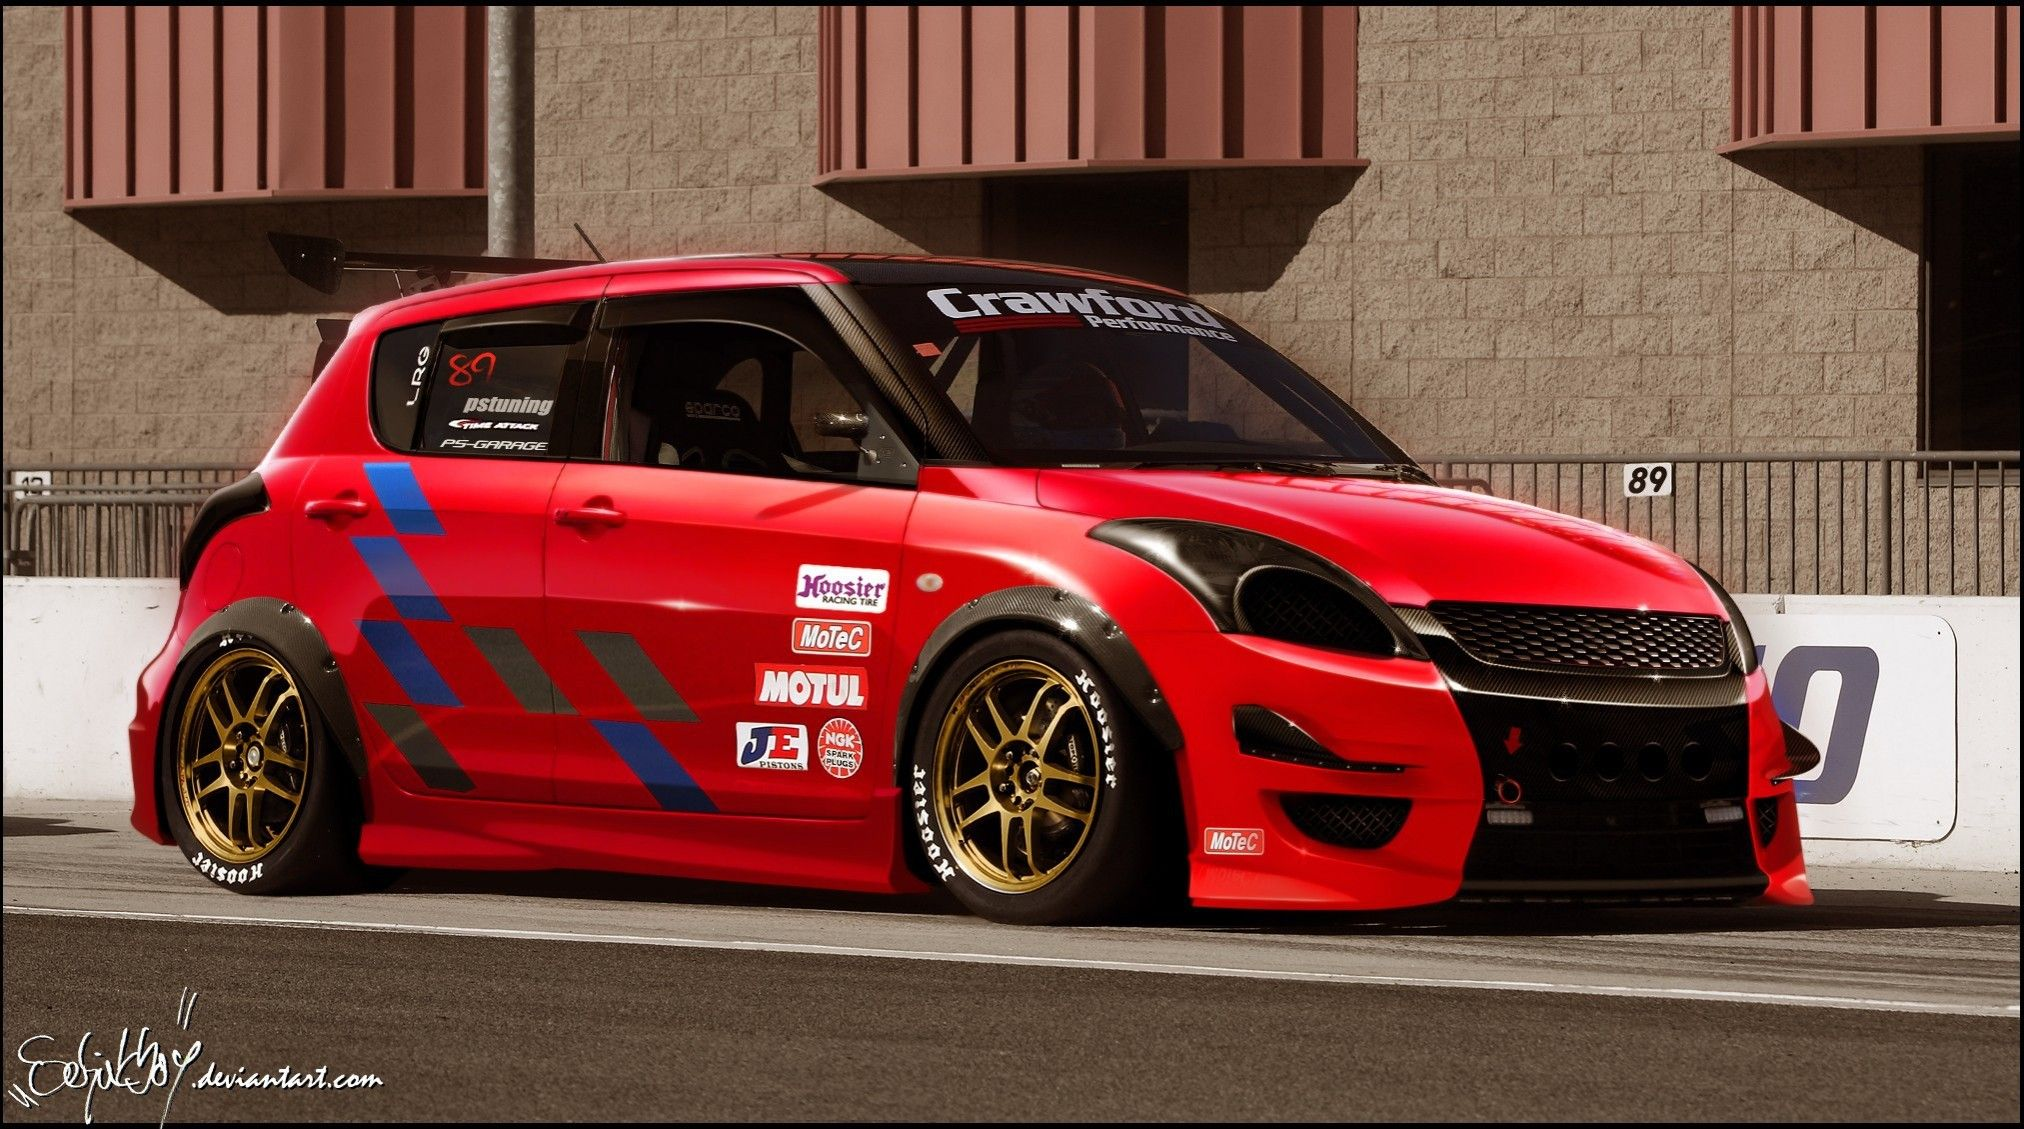 cars tuning 3d suzuki swift 2024x1129 tuning suzuki. Black Bedroom Furniture Sets. Home Design Ideas